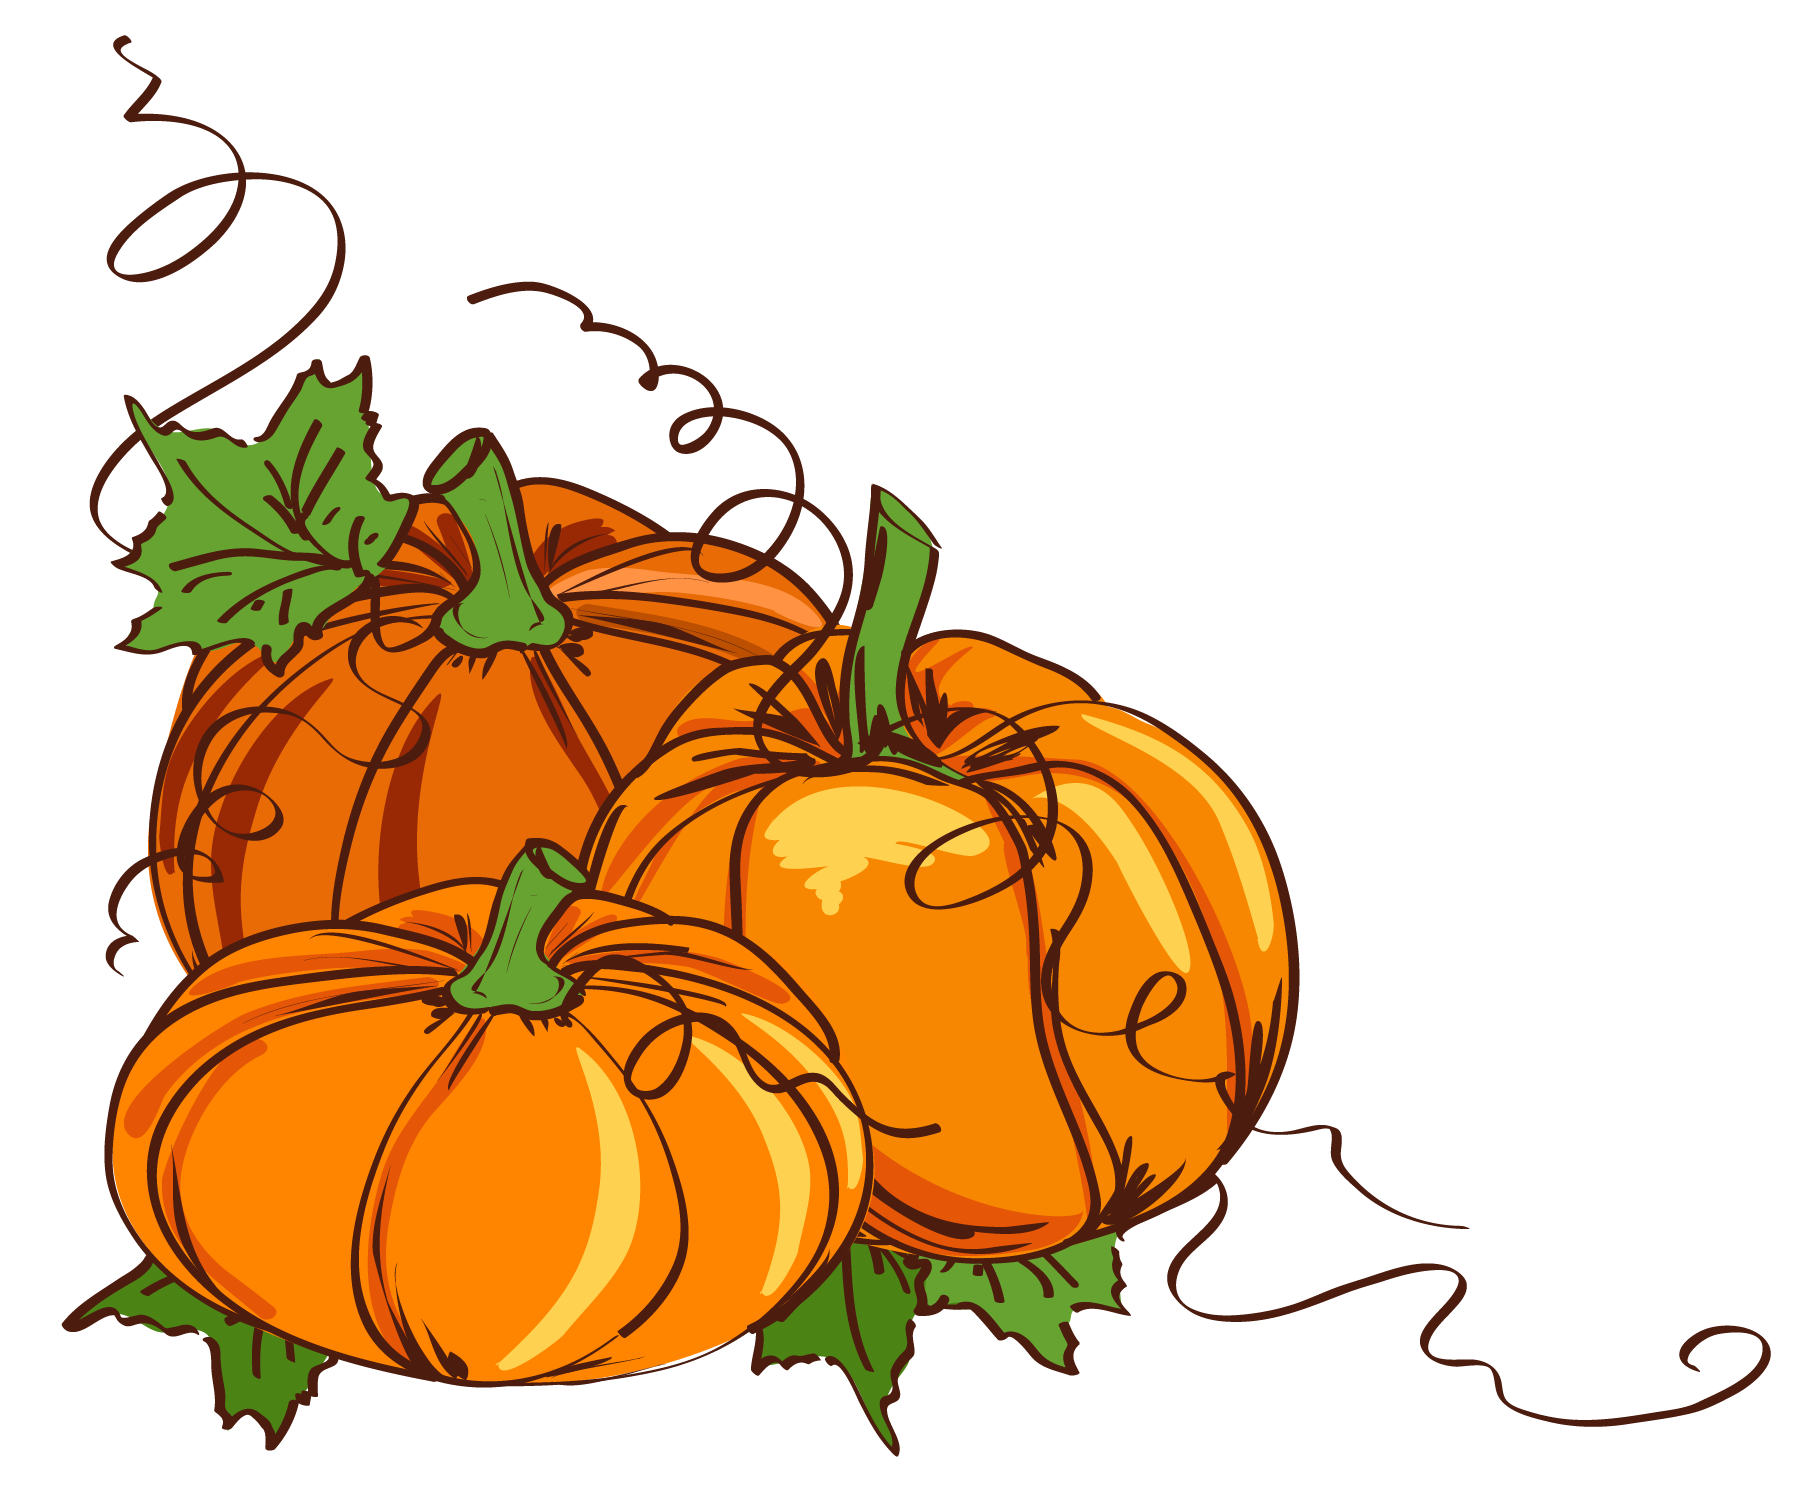 One pumpkin clipart svg freeuse download Thanksgiving Pumpkin Clipart at GetDrawings.com | Free for personal ... svg freeuse download